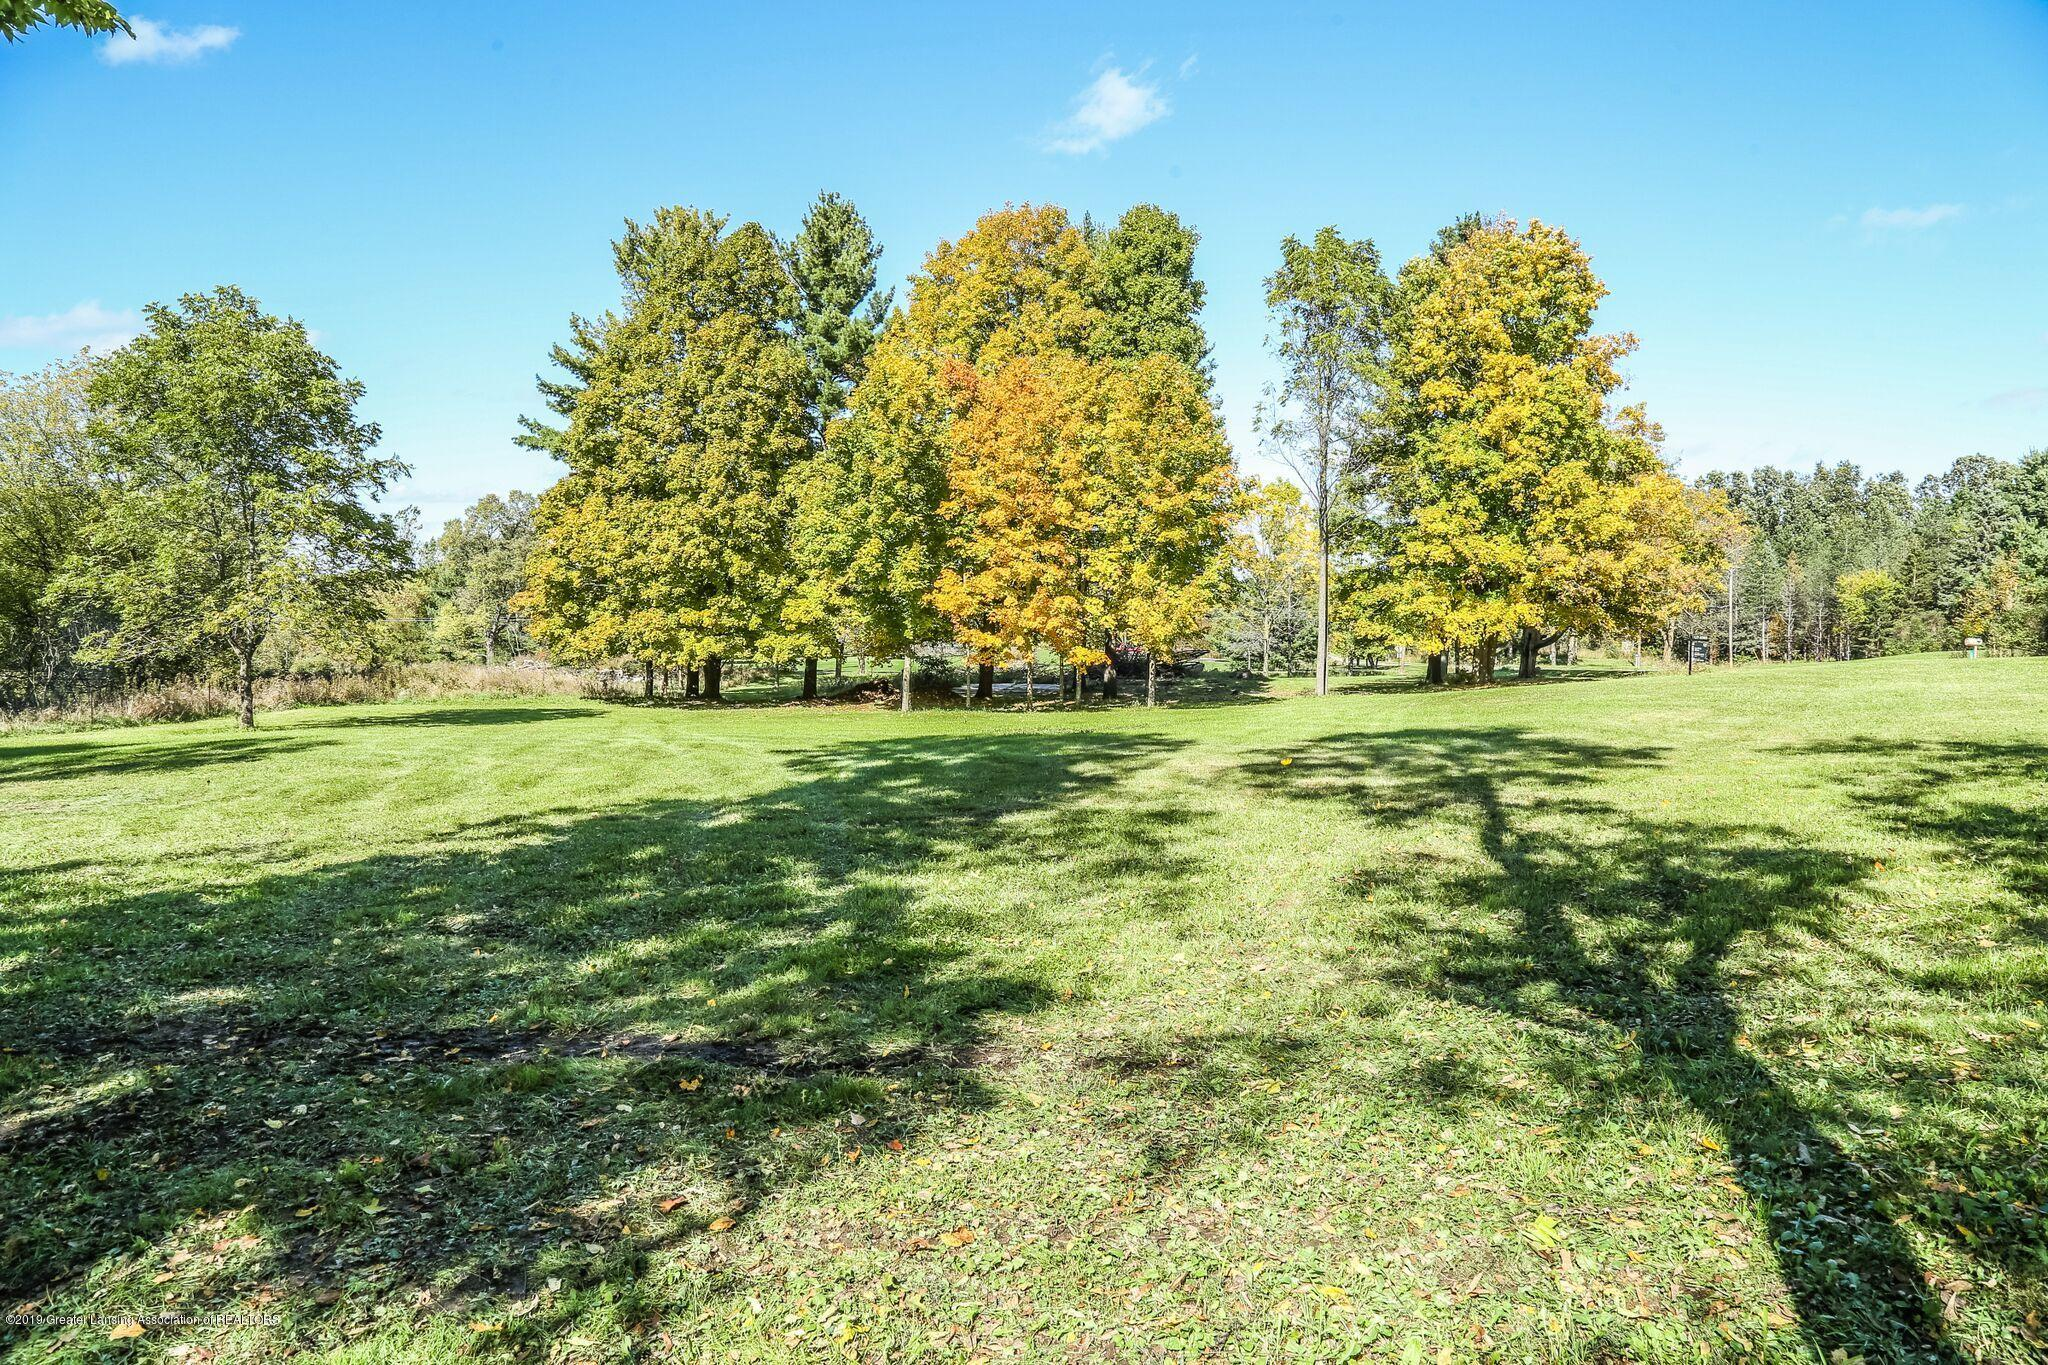 802 S Waverly Rd - Vacant Land - 3